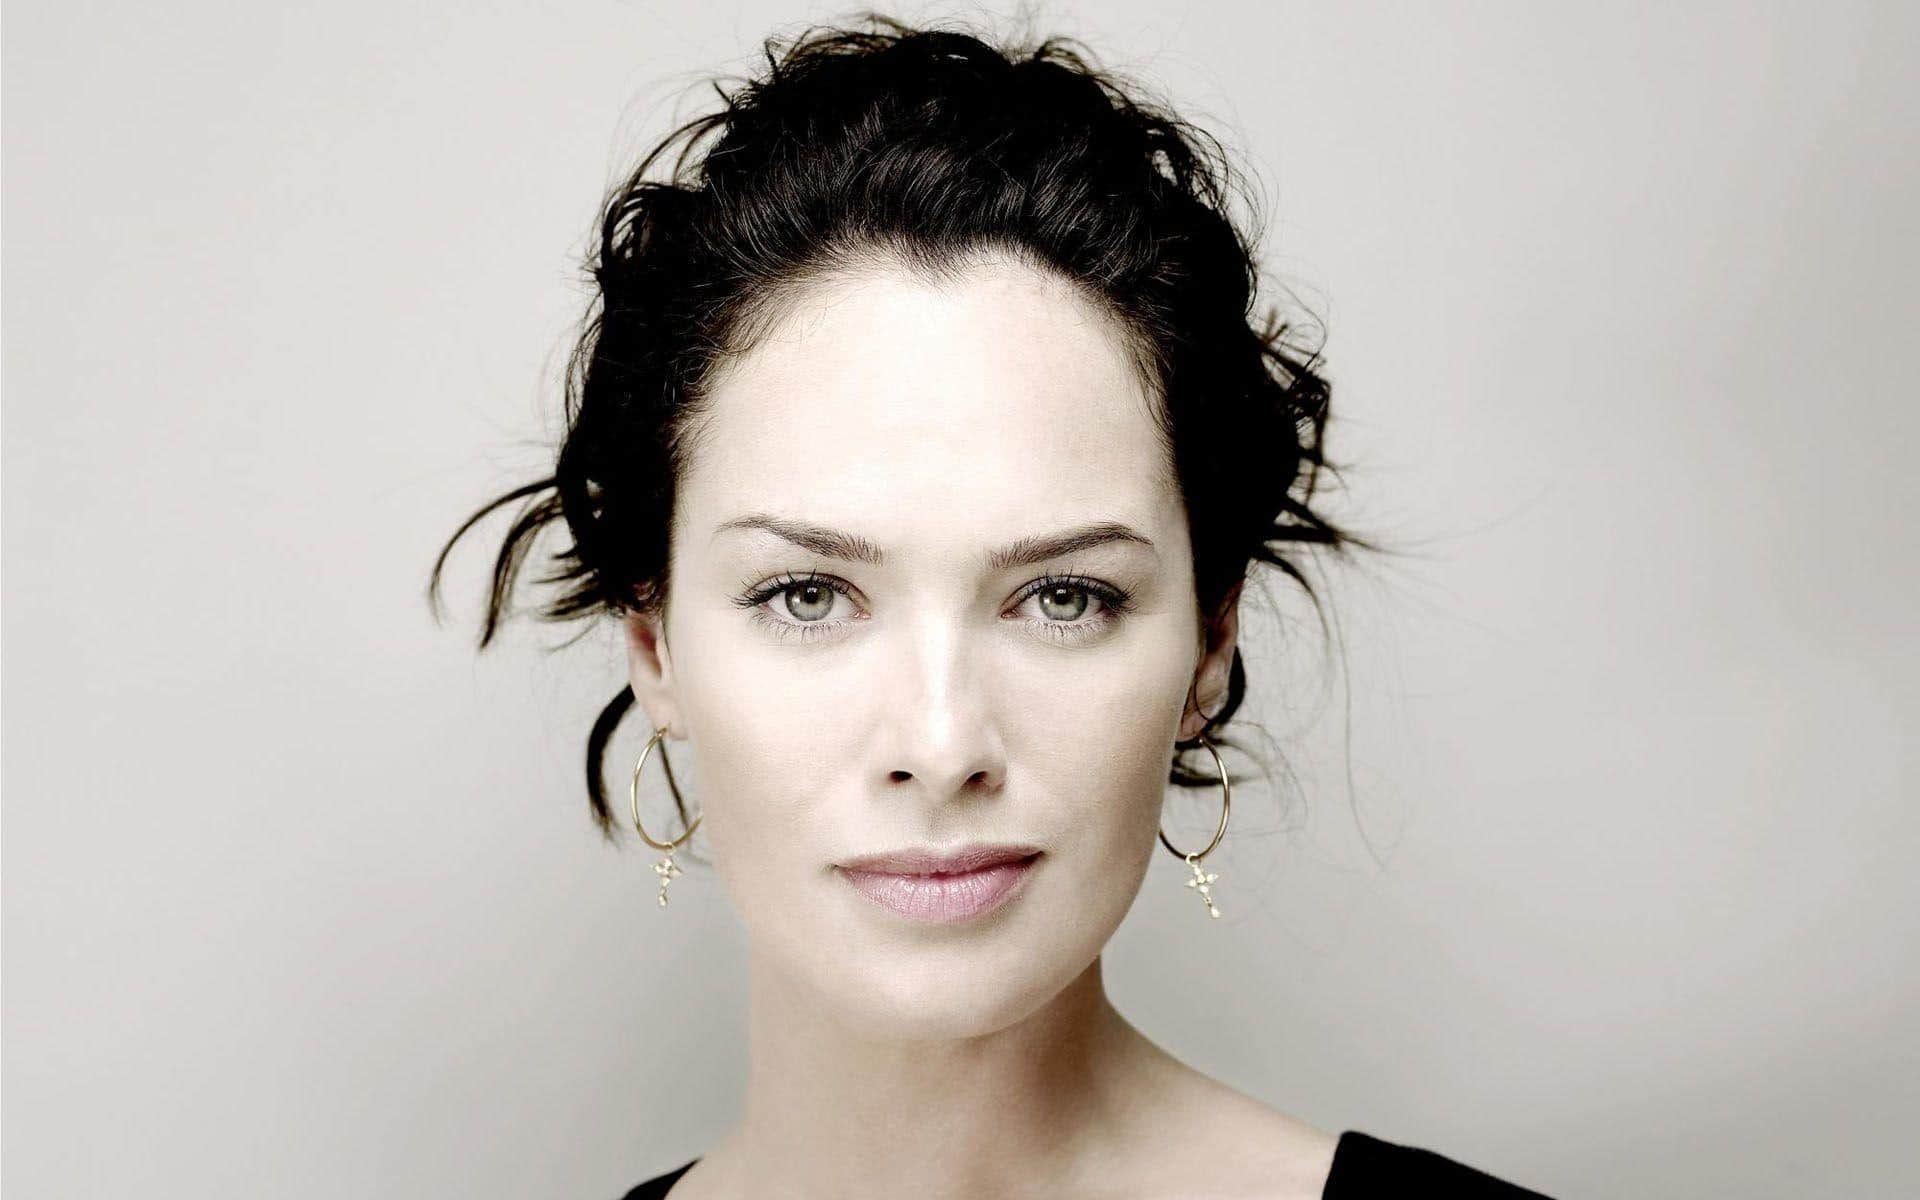 Lena Headey Makes Revelation About Her Meeting With Harvey Weinstein